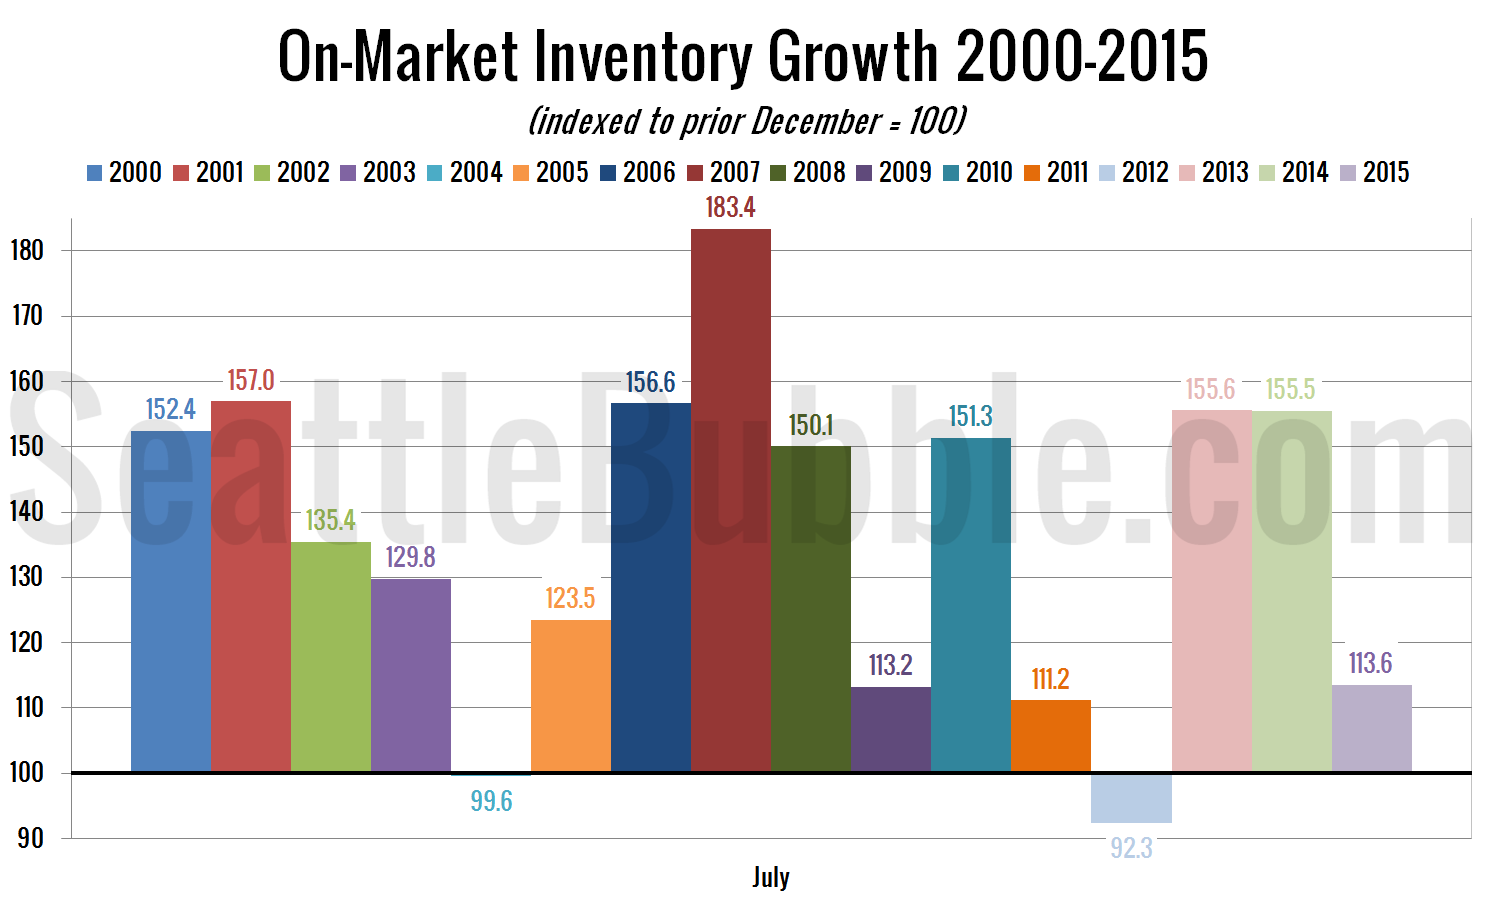 On-Market Inventory Growth 2000-2015